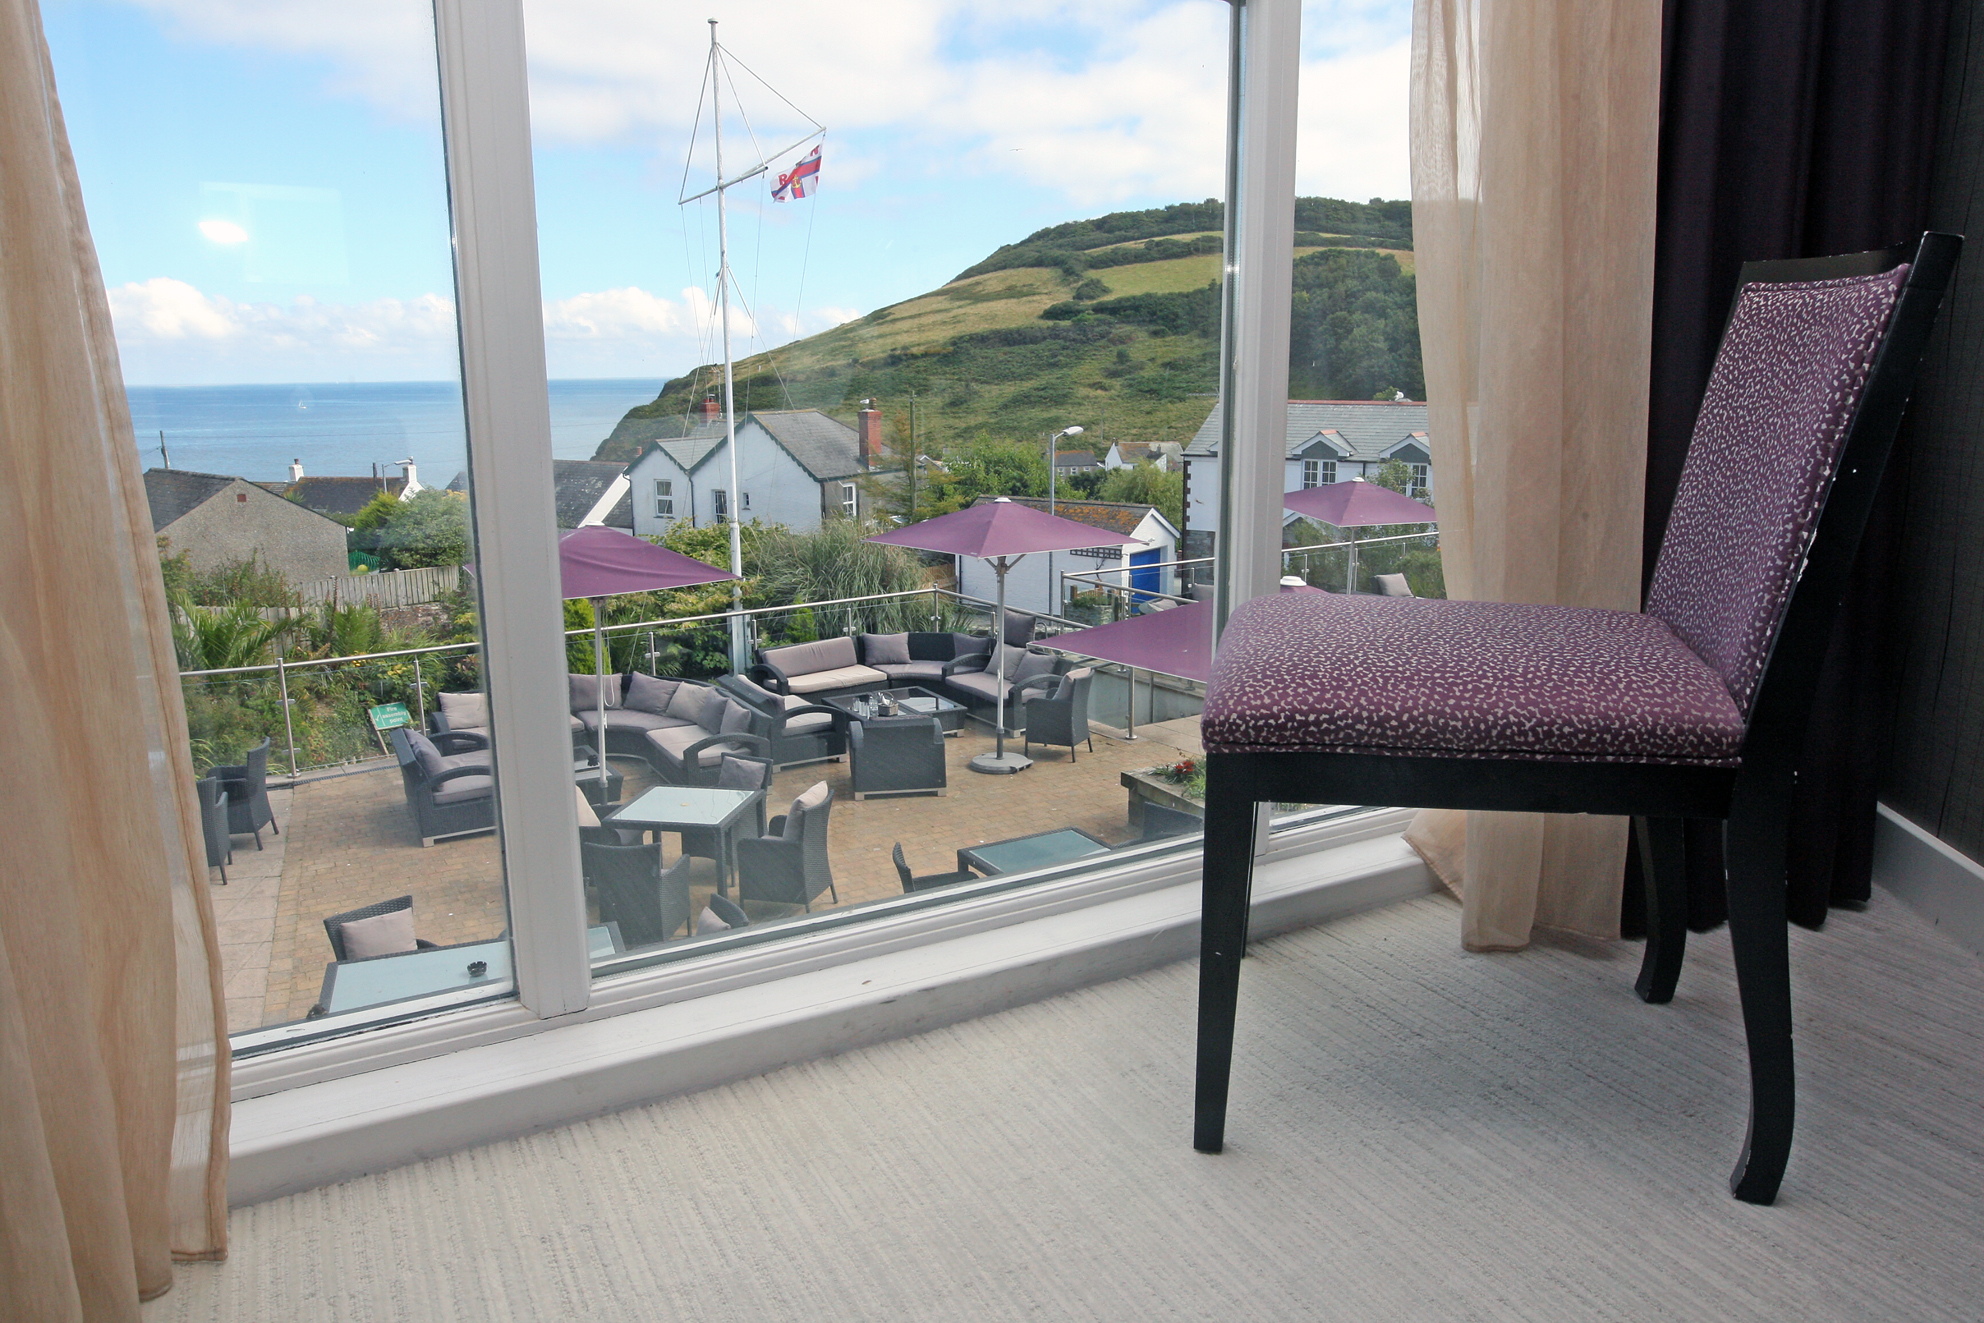 LawnrocRm6c 30/08/2016 The Llawnroc Hotel. Room 6, a double room with sea views over the hotel terrace, to the hilltops that lead to the SouthWest Coastal Path.